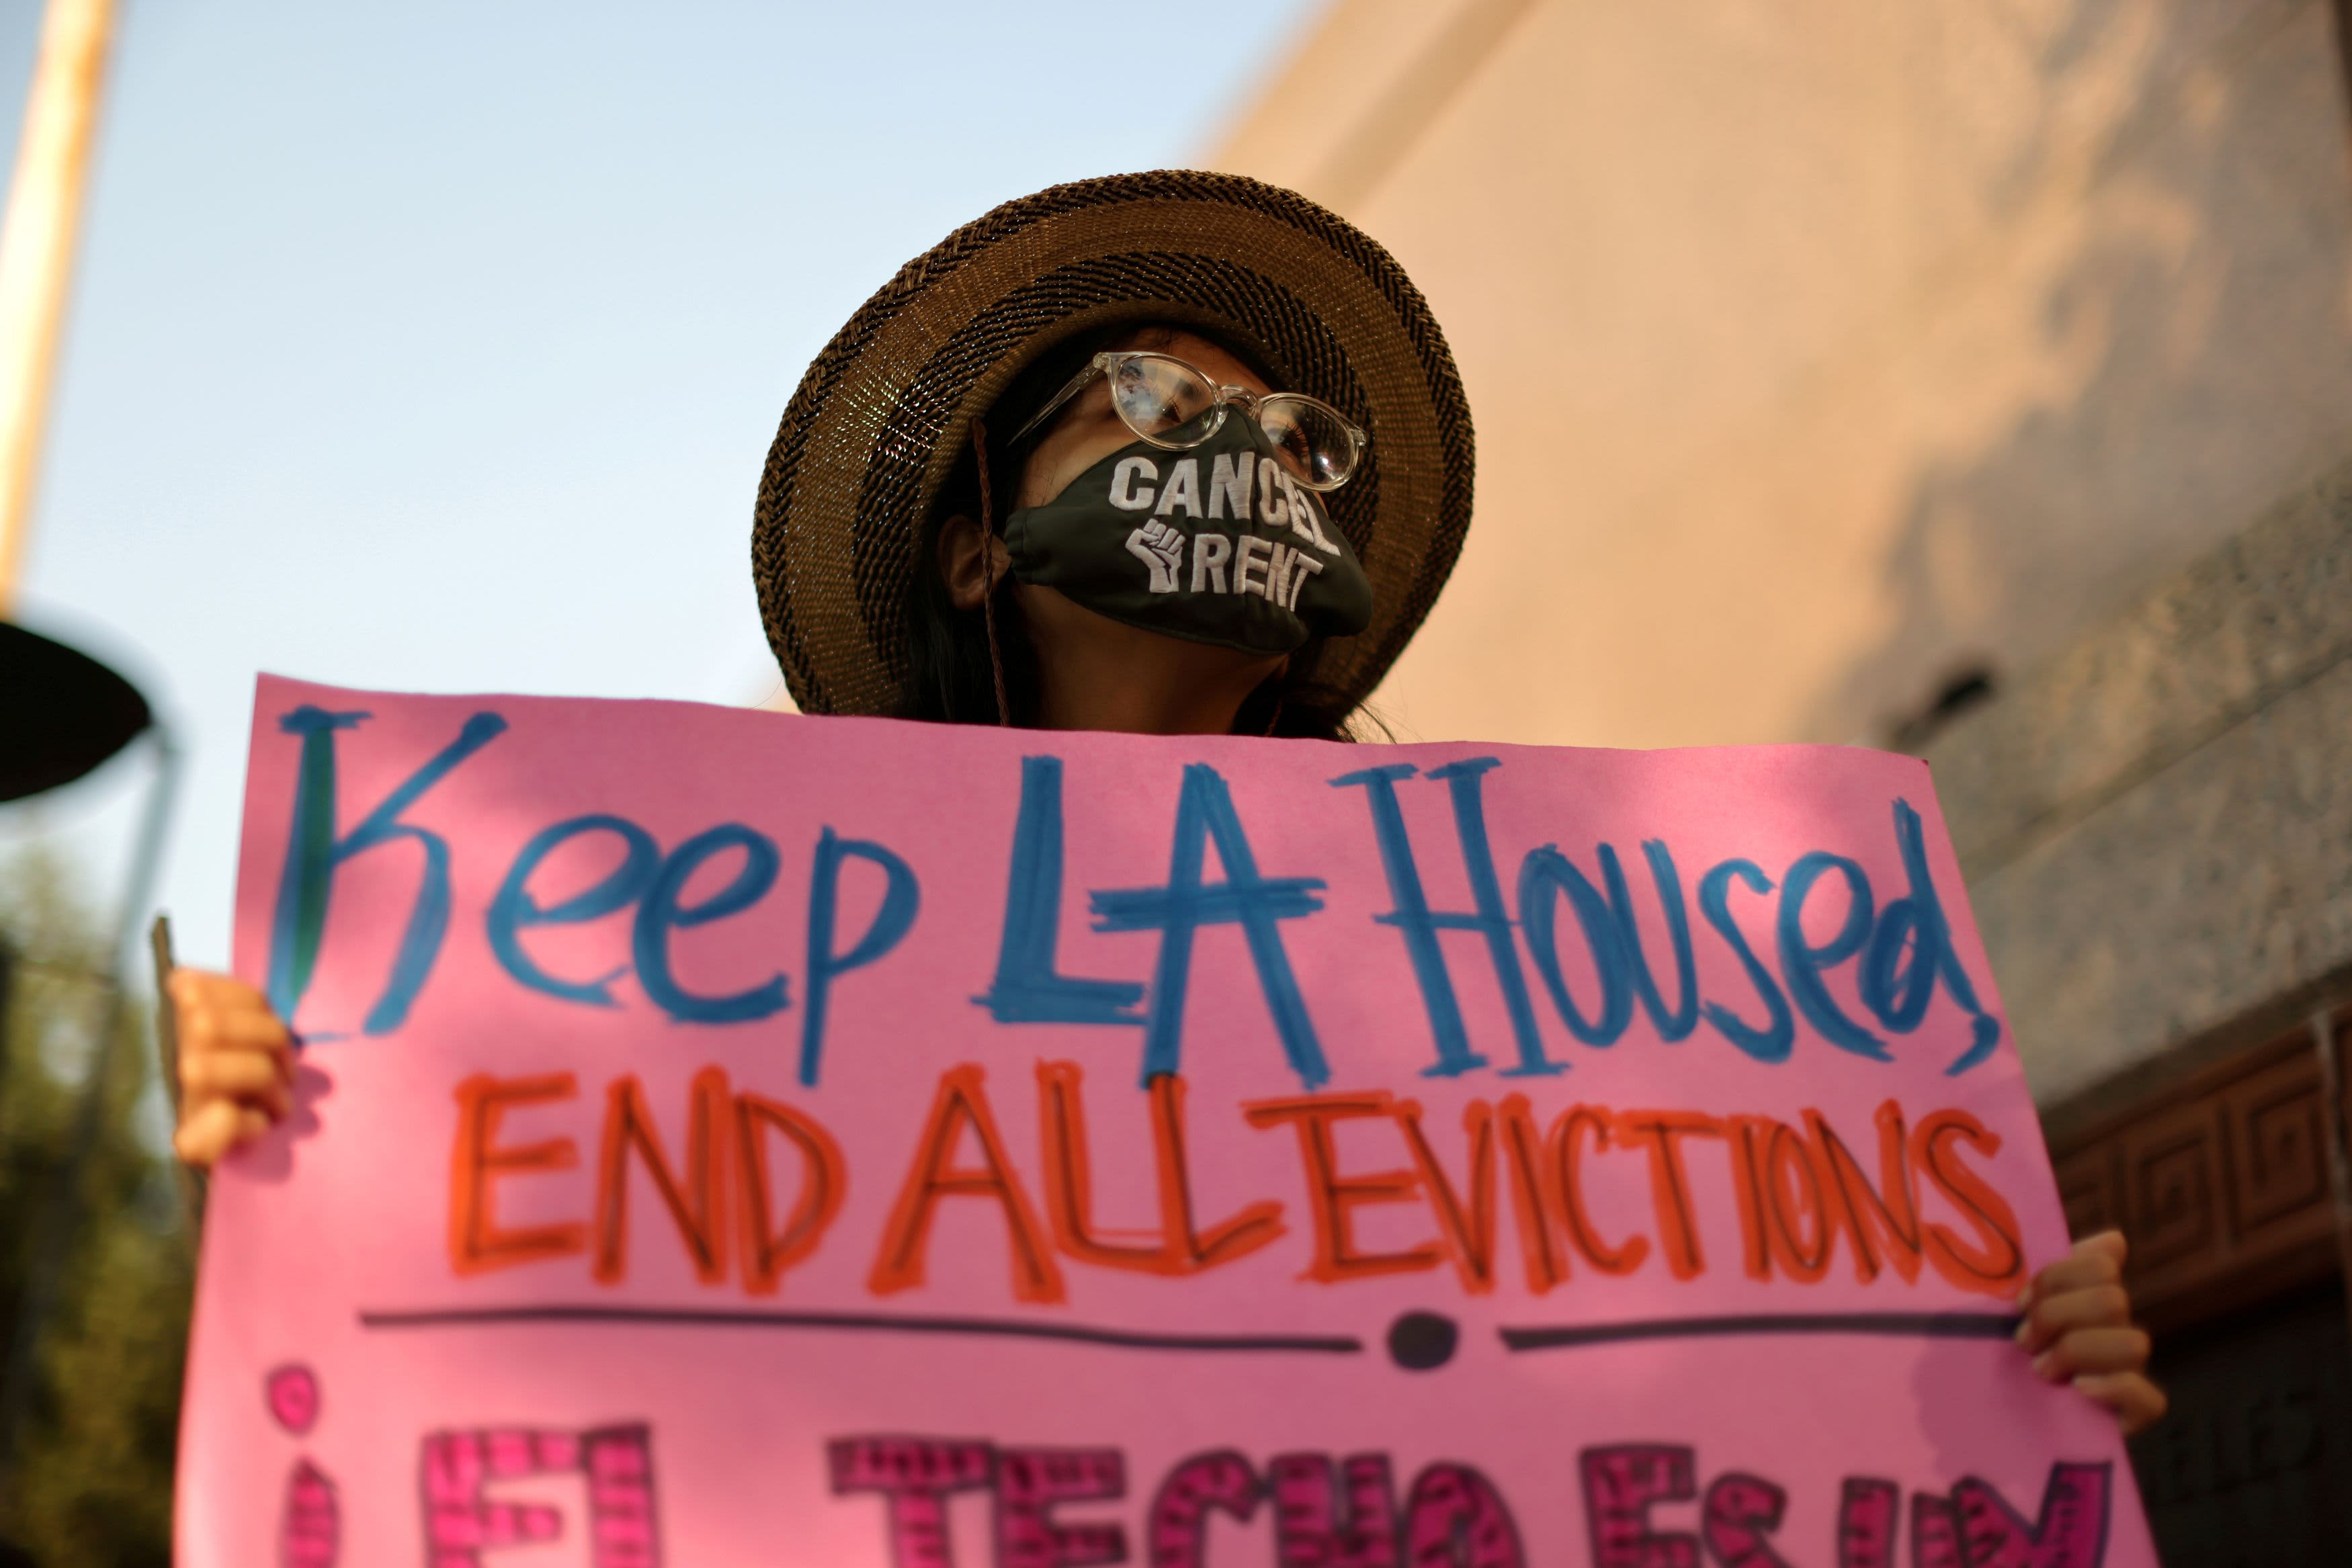 The national eviction ban ends July 31. What to do if you're at risk of eviction